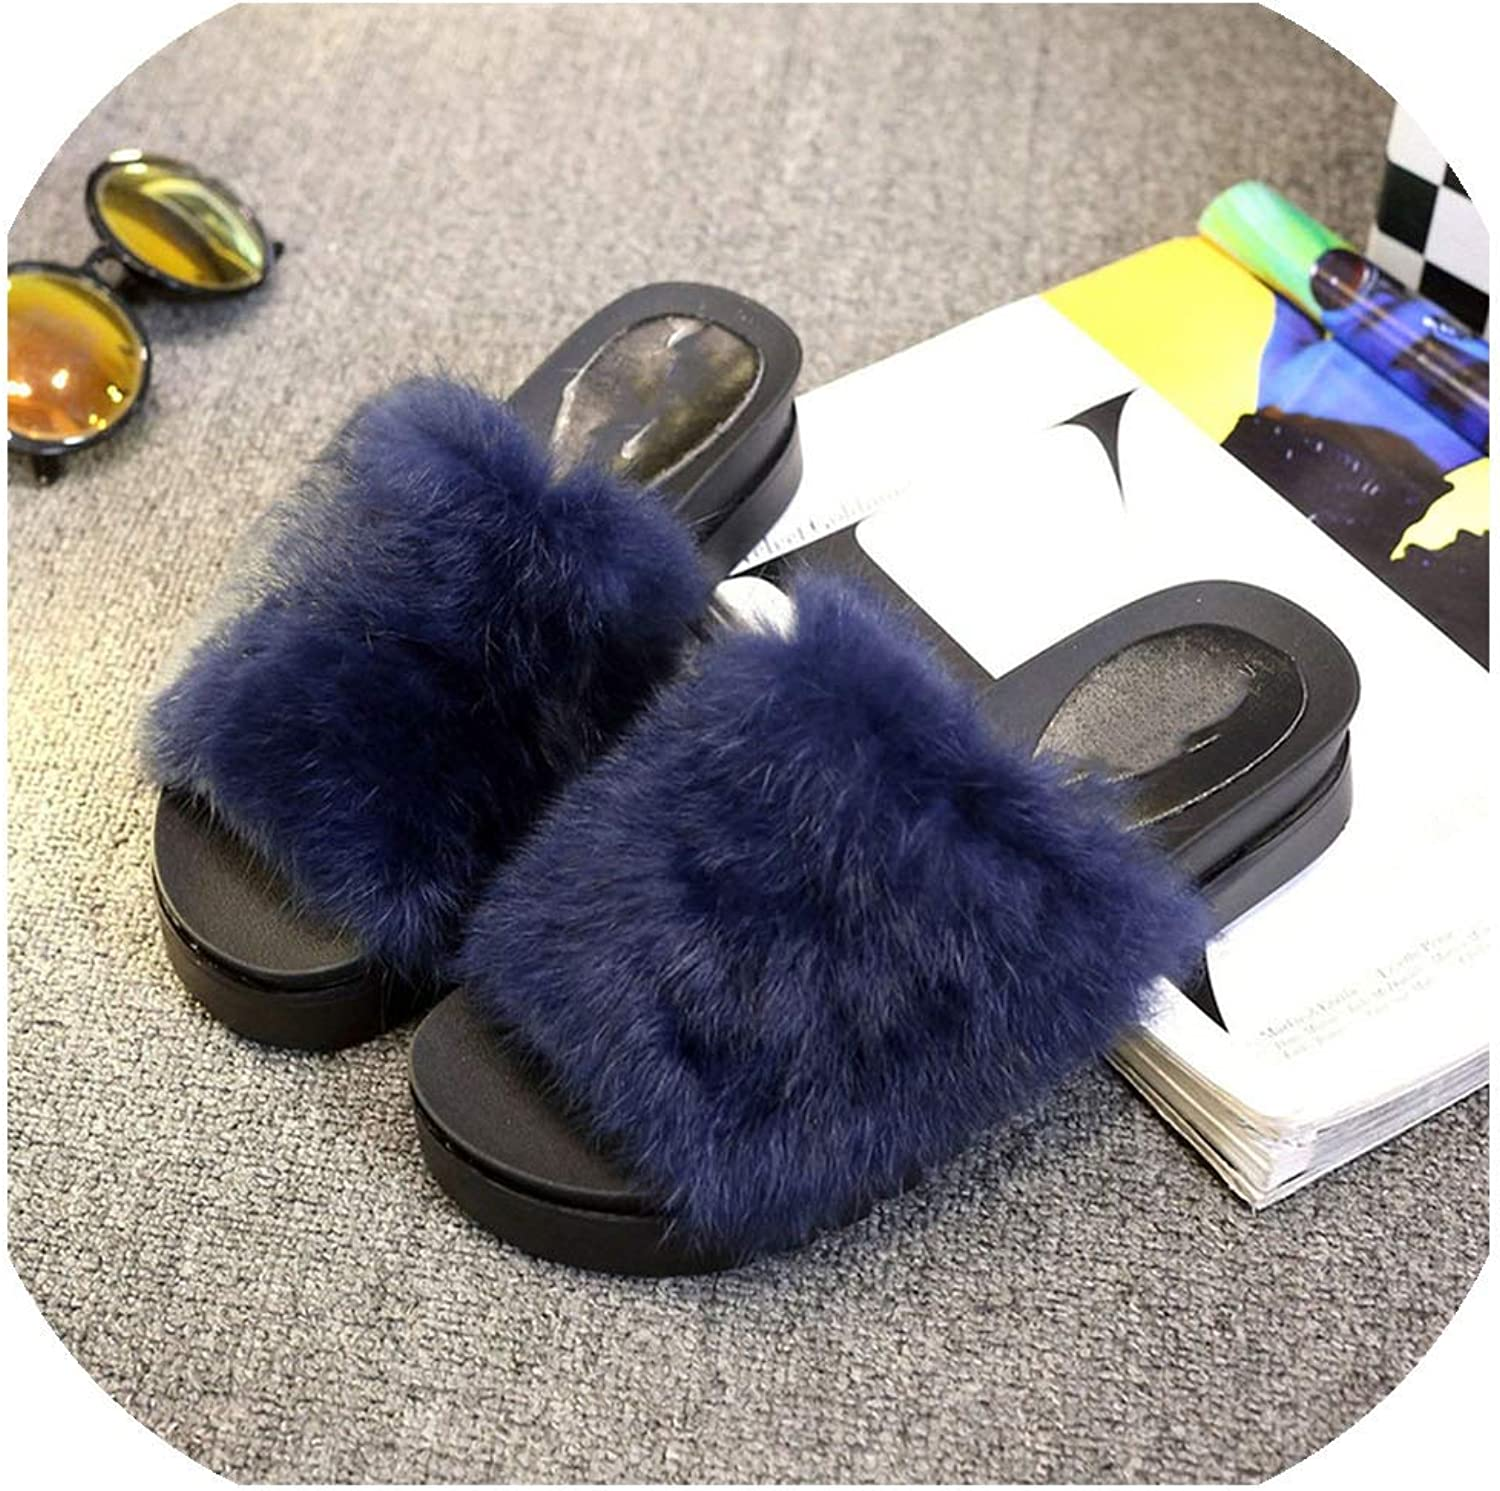 Home Rabbit Slippers Women Platform Soft Platform Casual Furry Sandals,